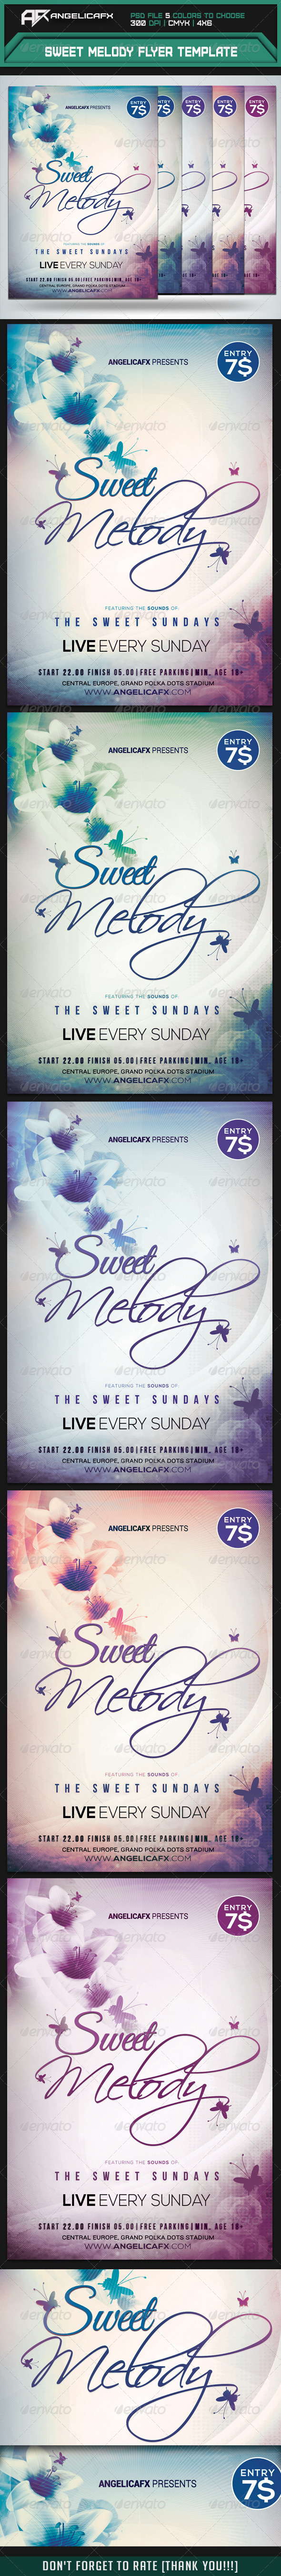 Sweet Melody Flyer Template